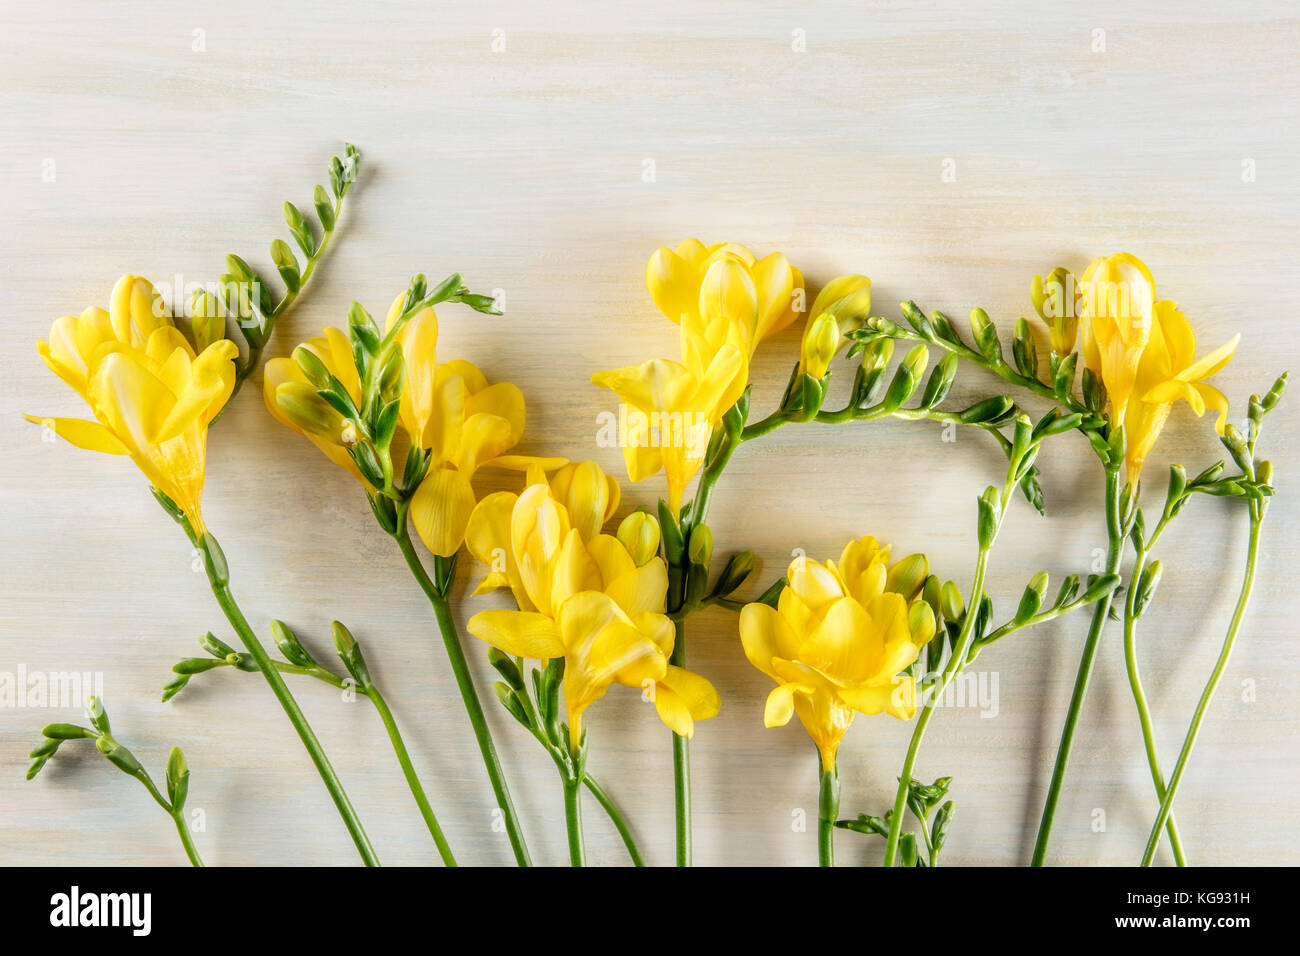 Yellow freesia flowers stock photos yellow freesia flowers stock spring design template with yellow freesia flowers and copy spac stock image izmirmasajfo